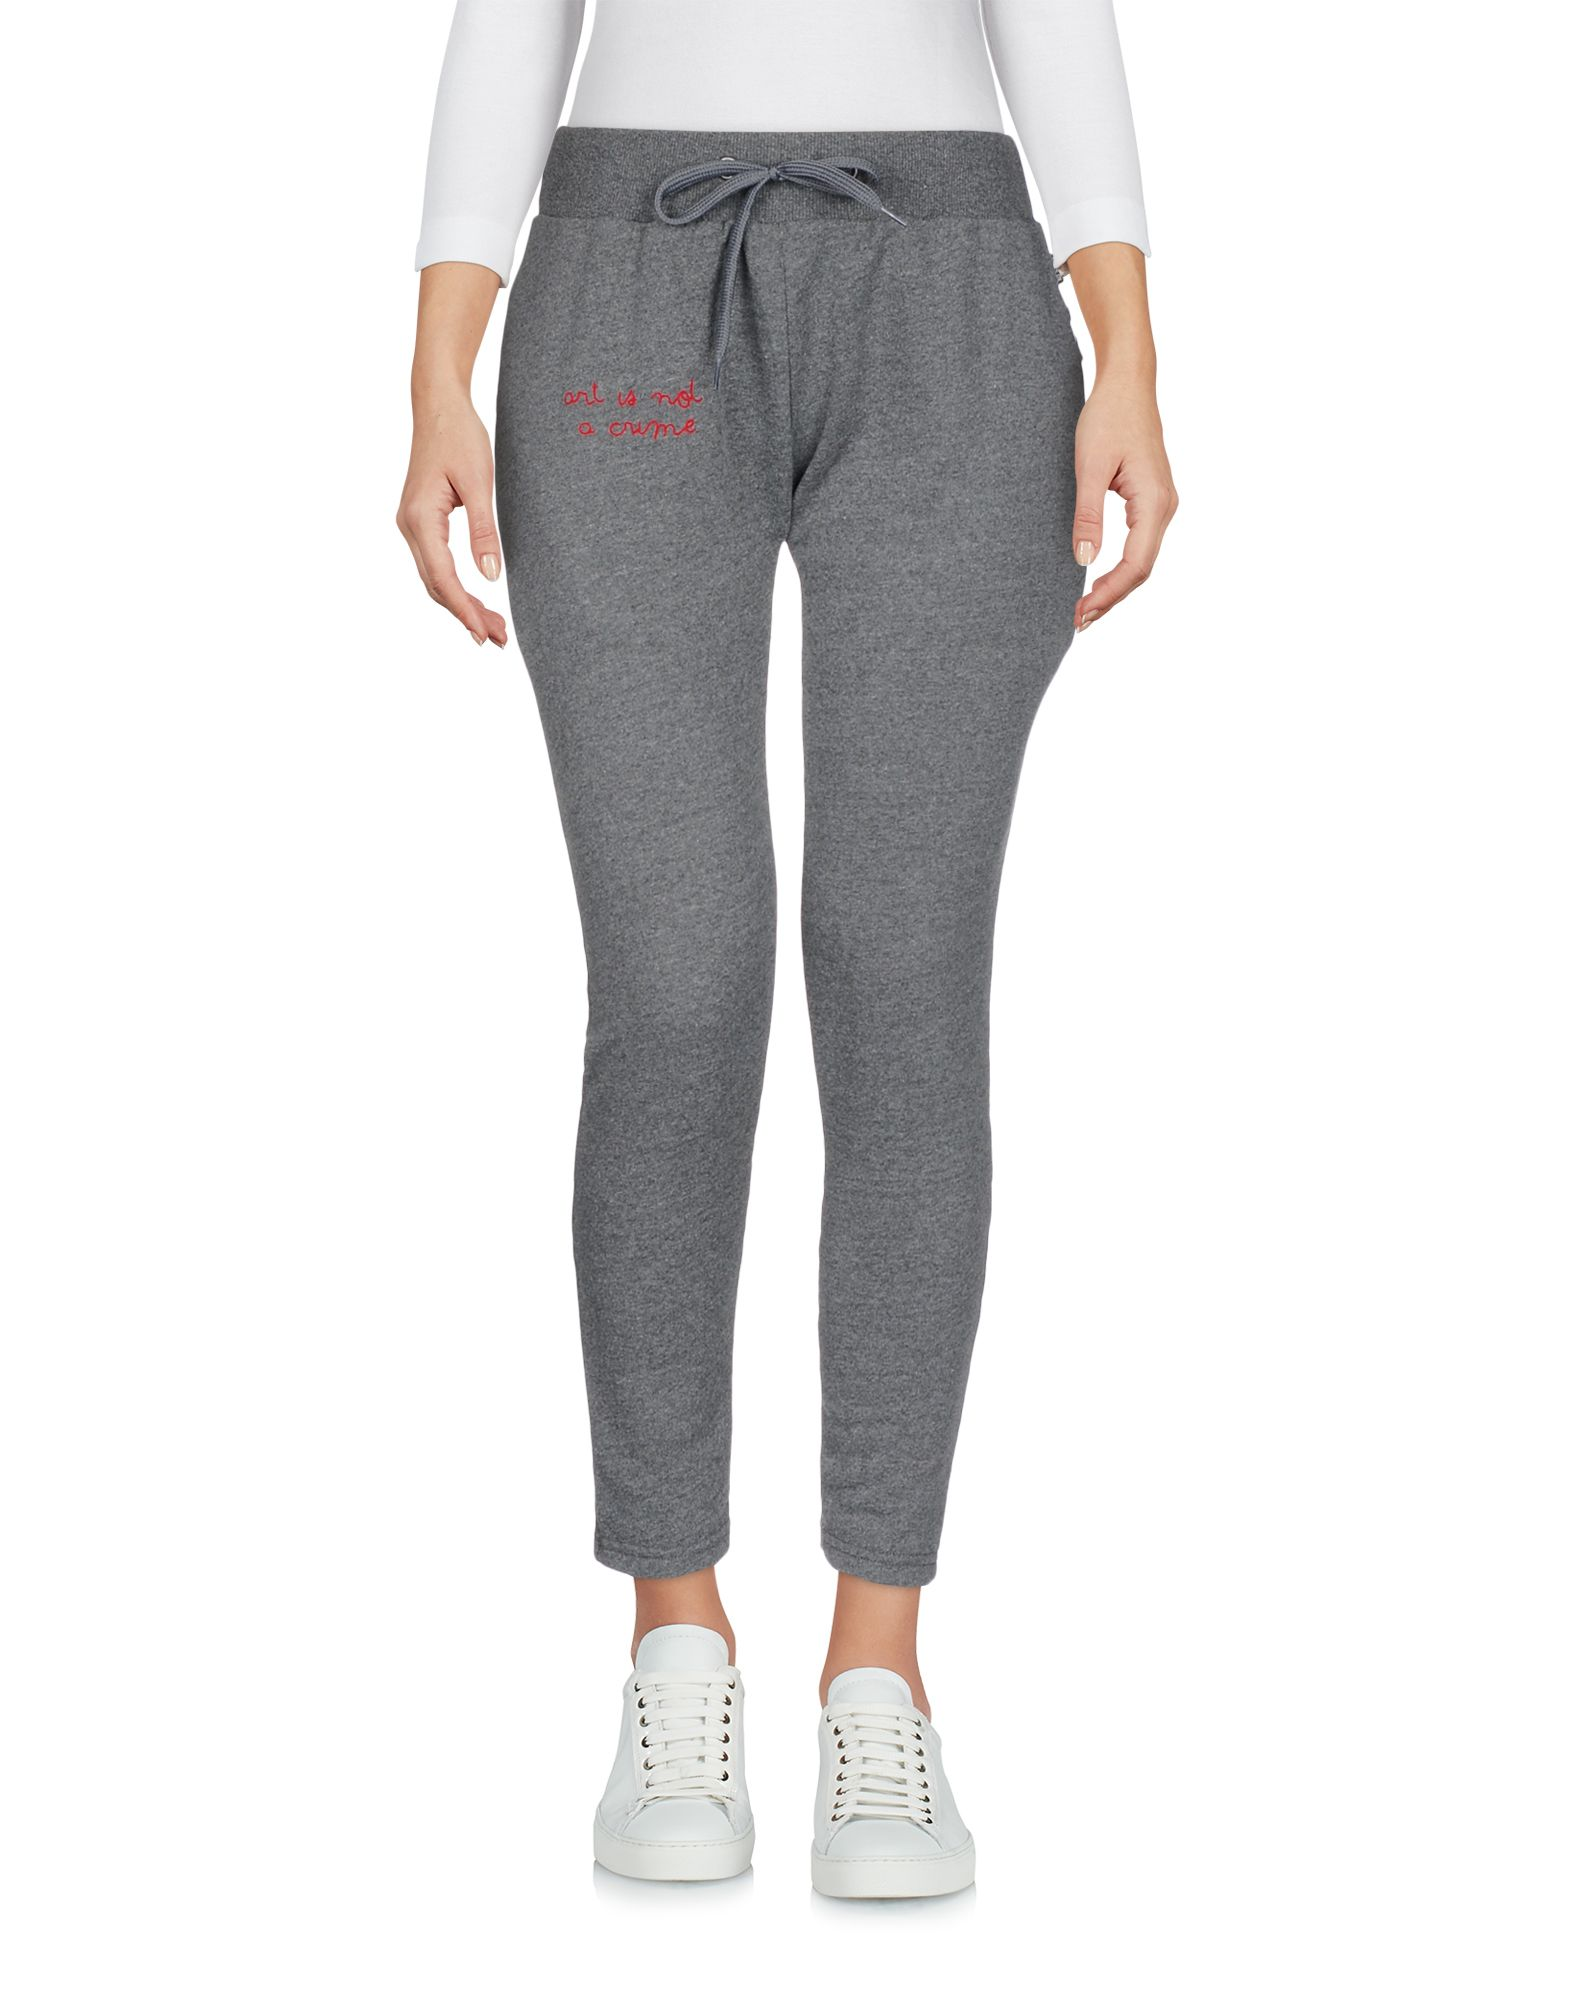 TROUSERS - Casual trousers Ko Samui Outlet Store Locations 2018 Unisex Cheap Price 100% Guaranteed Cheap Online ebmNVlpBf